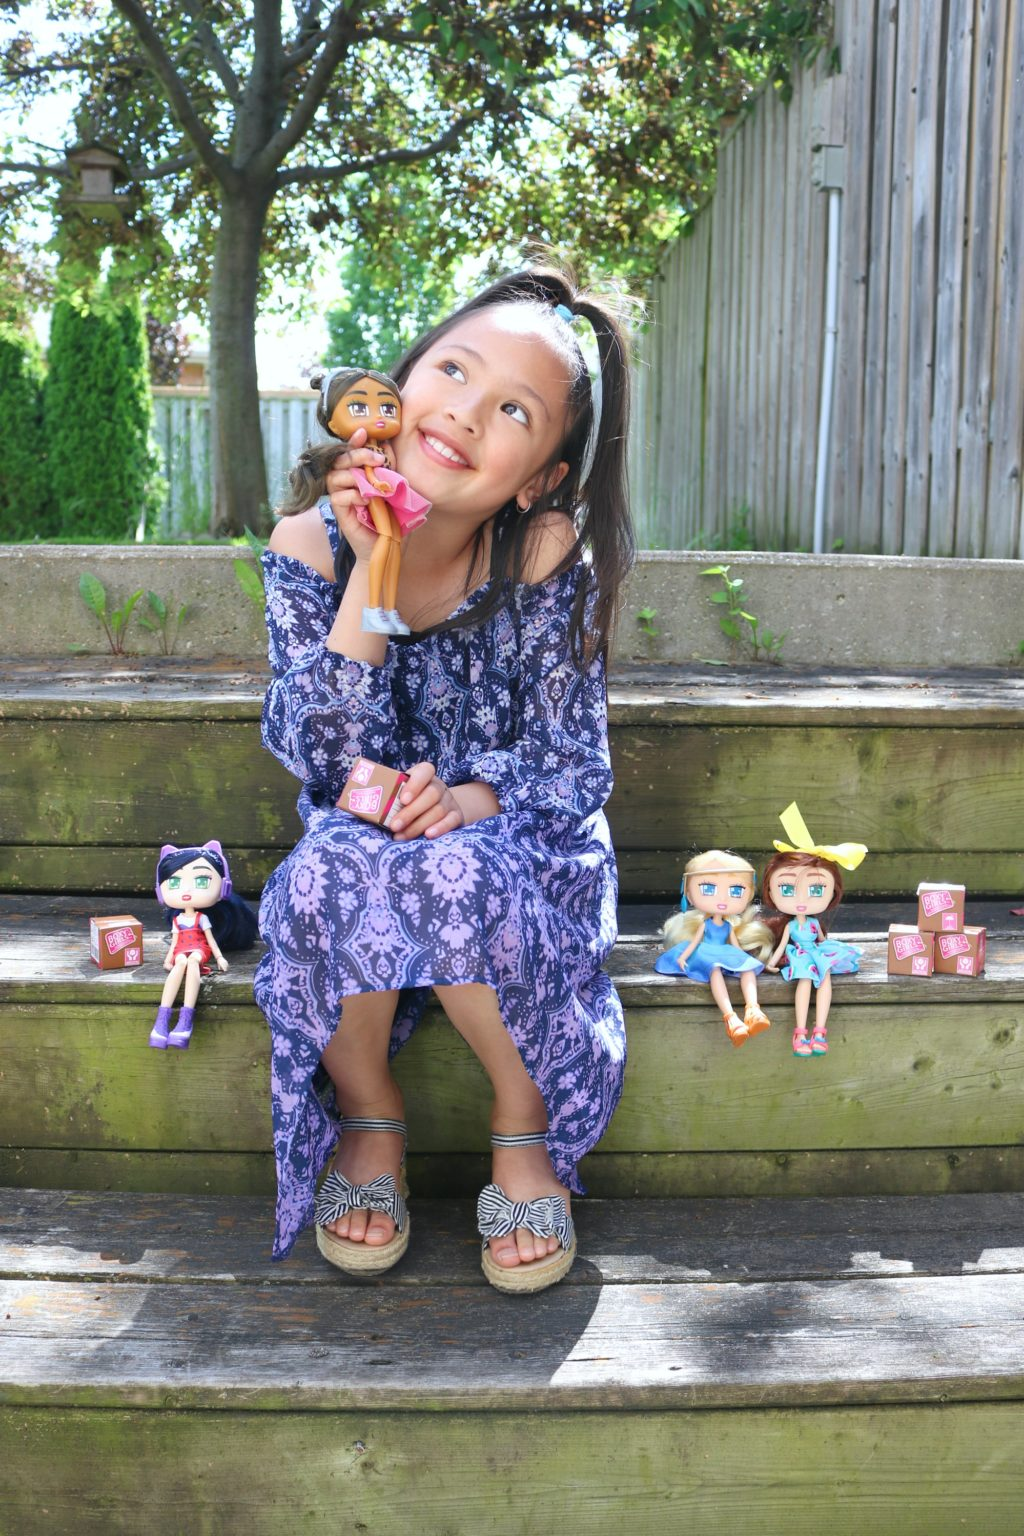 Mimi, a little girl, tilts her head and holds a Boxy Girl next to her cheek and smiles.